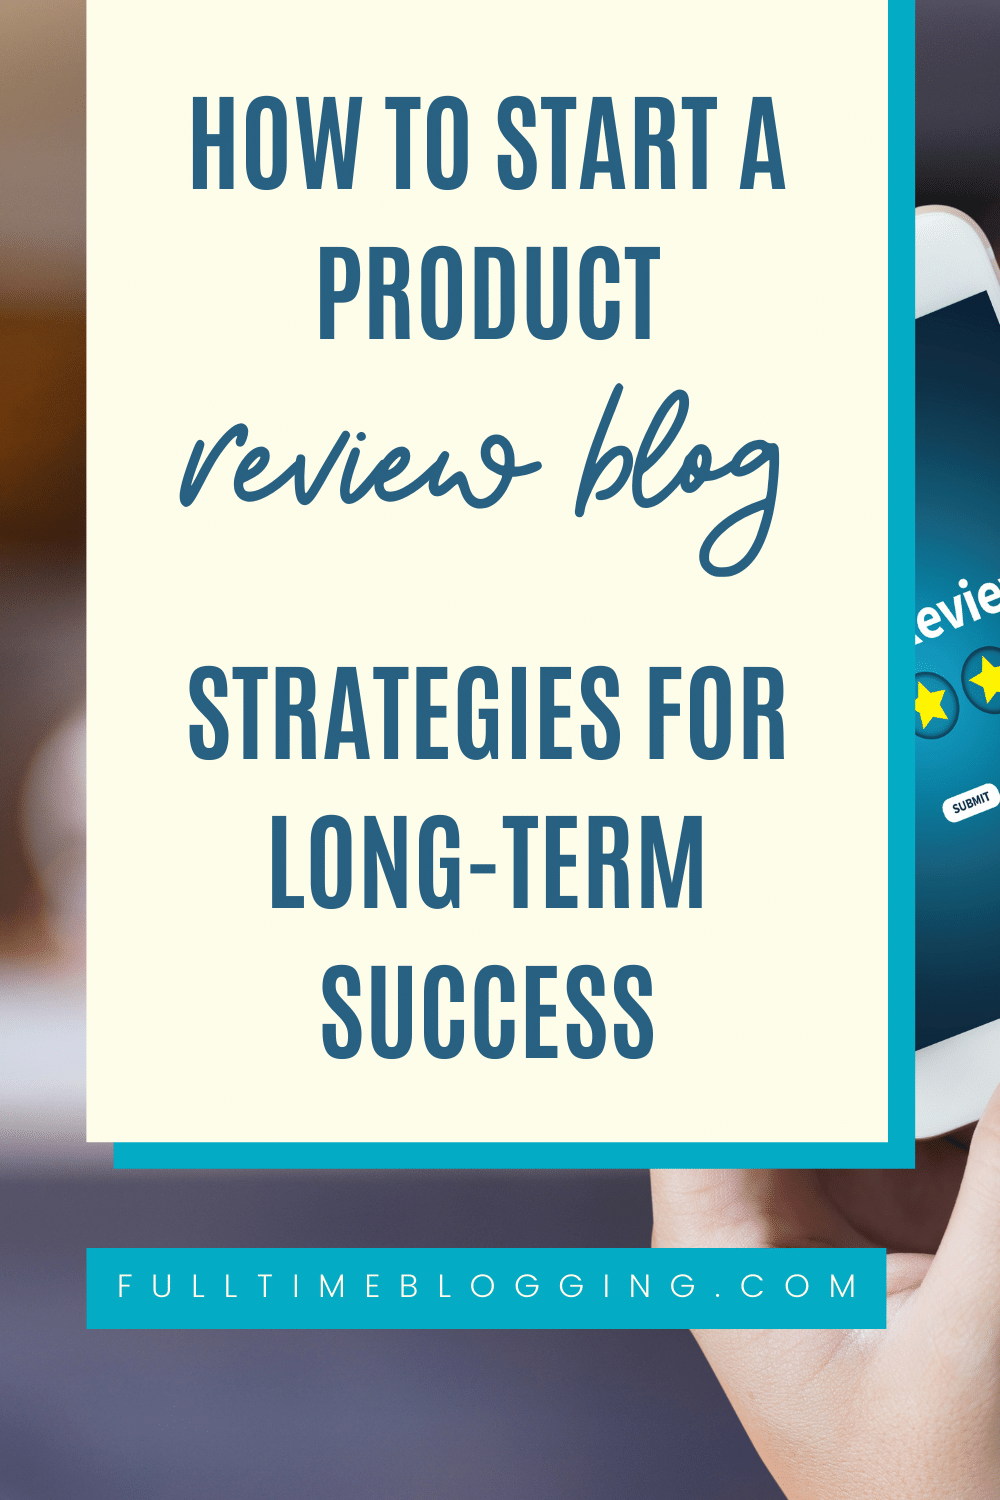 How To Start A Product Review Blog